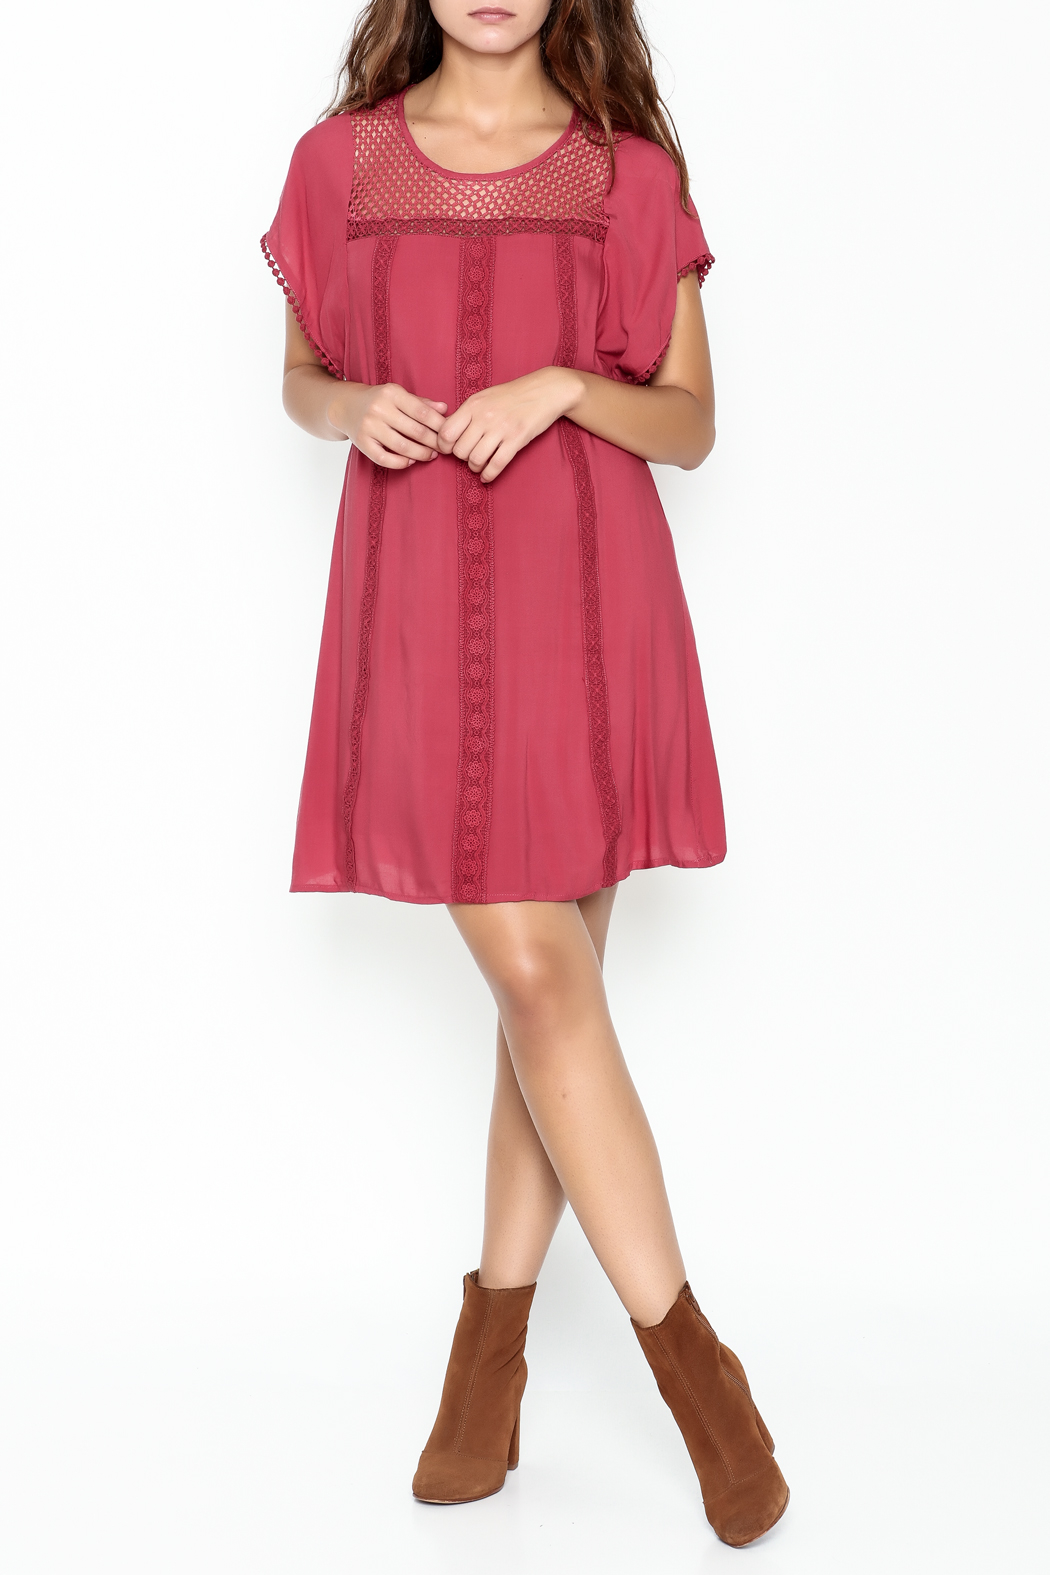 She + Sky Red Lace Tunic - Side Cropped Image